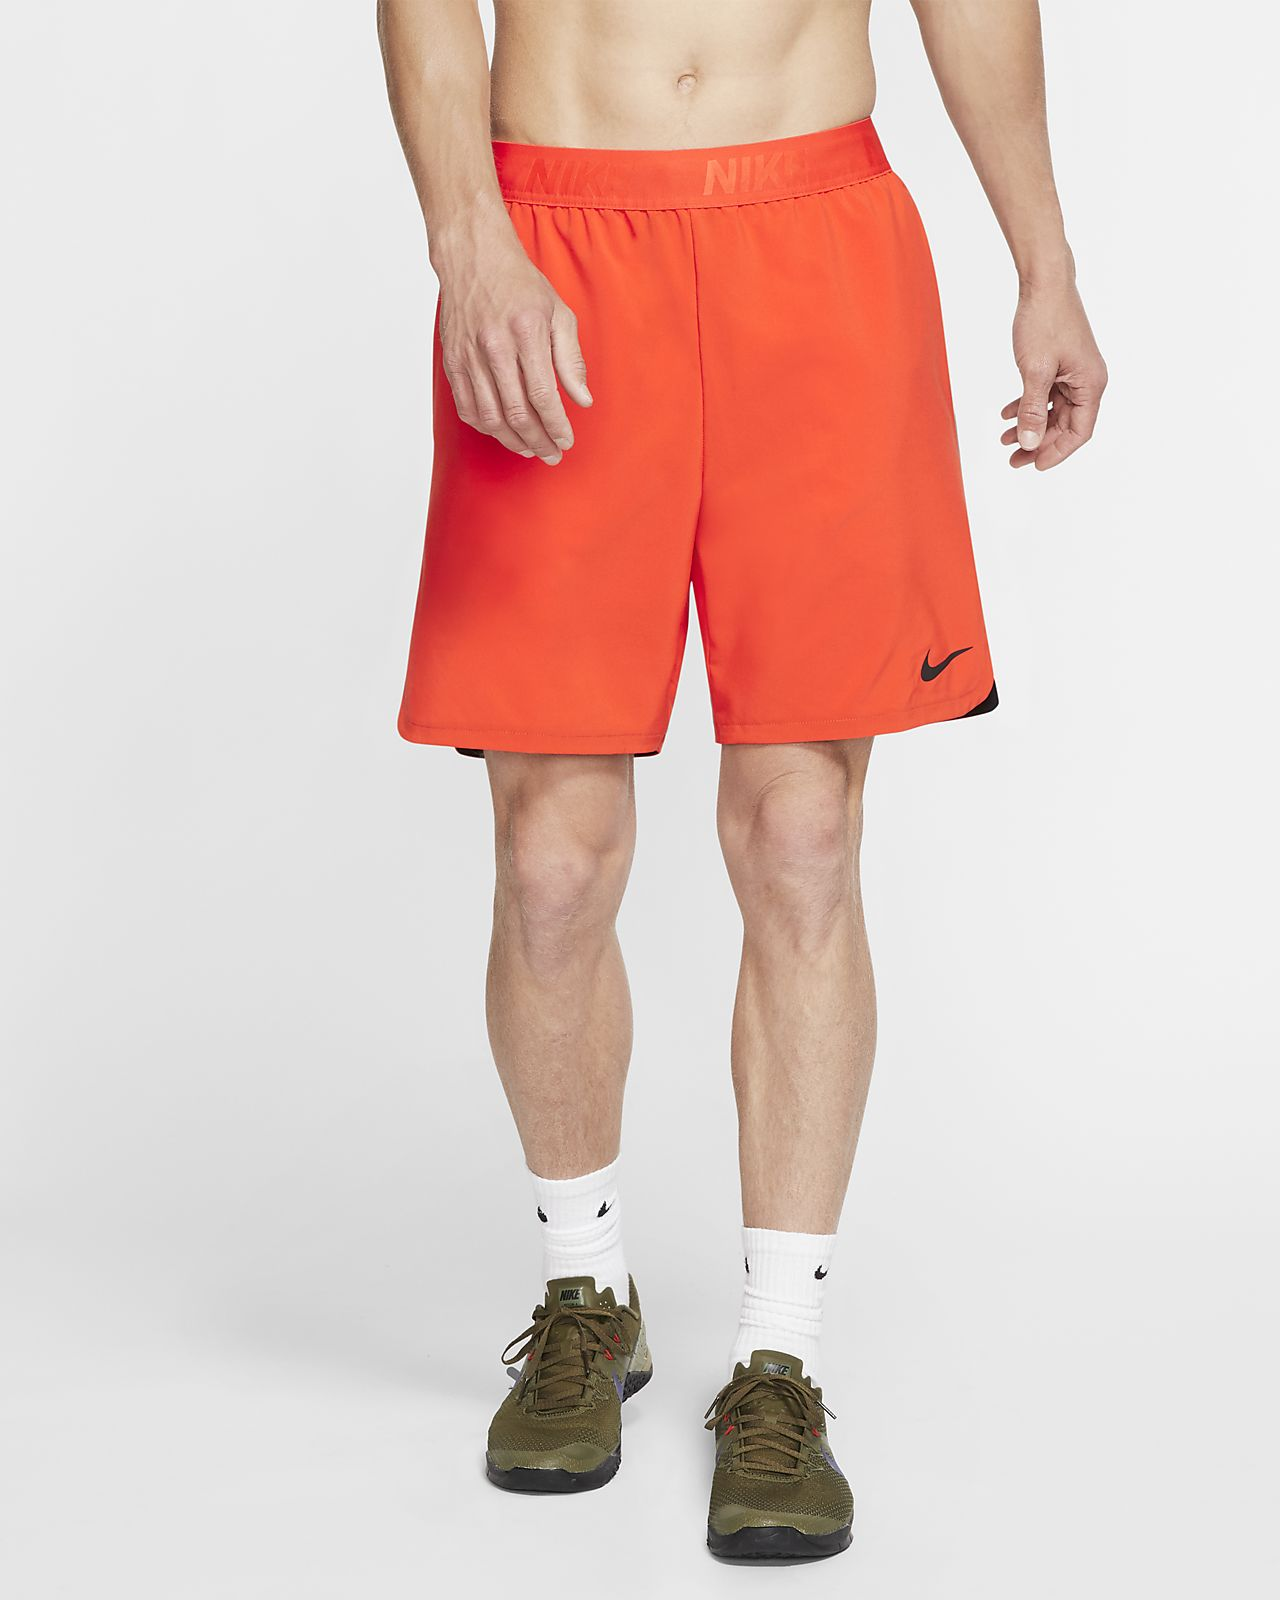 Details about NWT NIKE Men's Washed Fleece Shorts Orange Gray Rare Colors! $50!